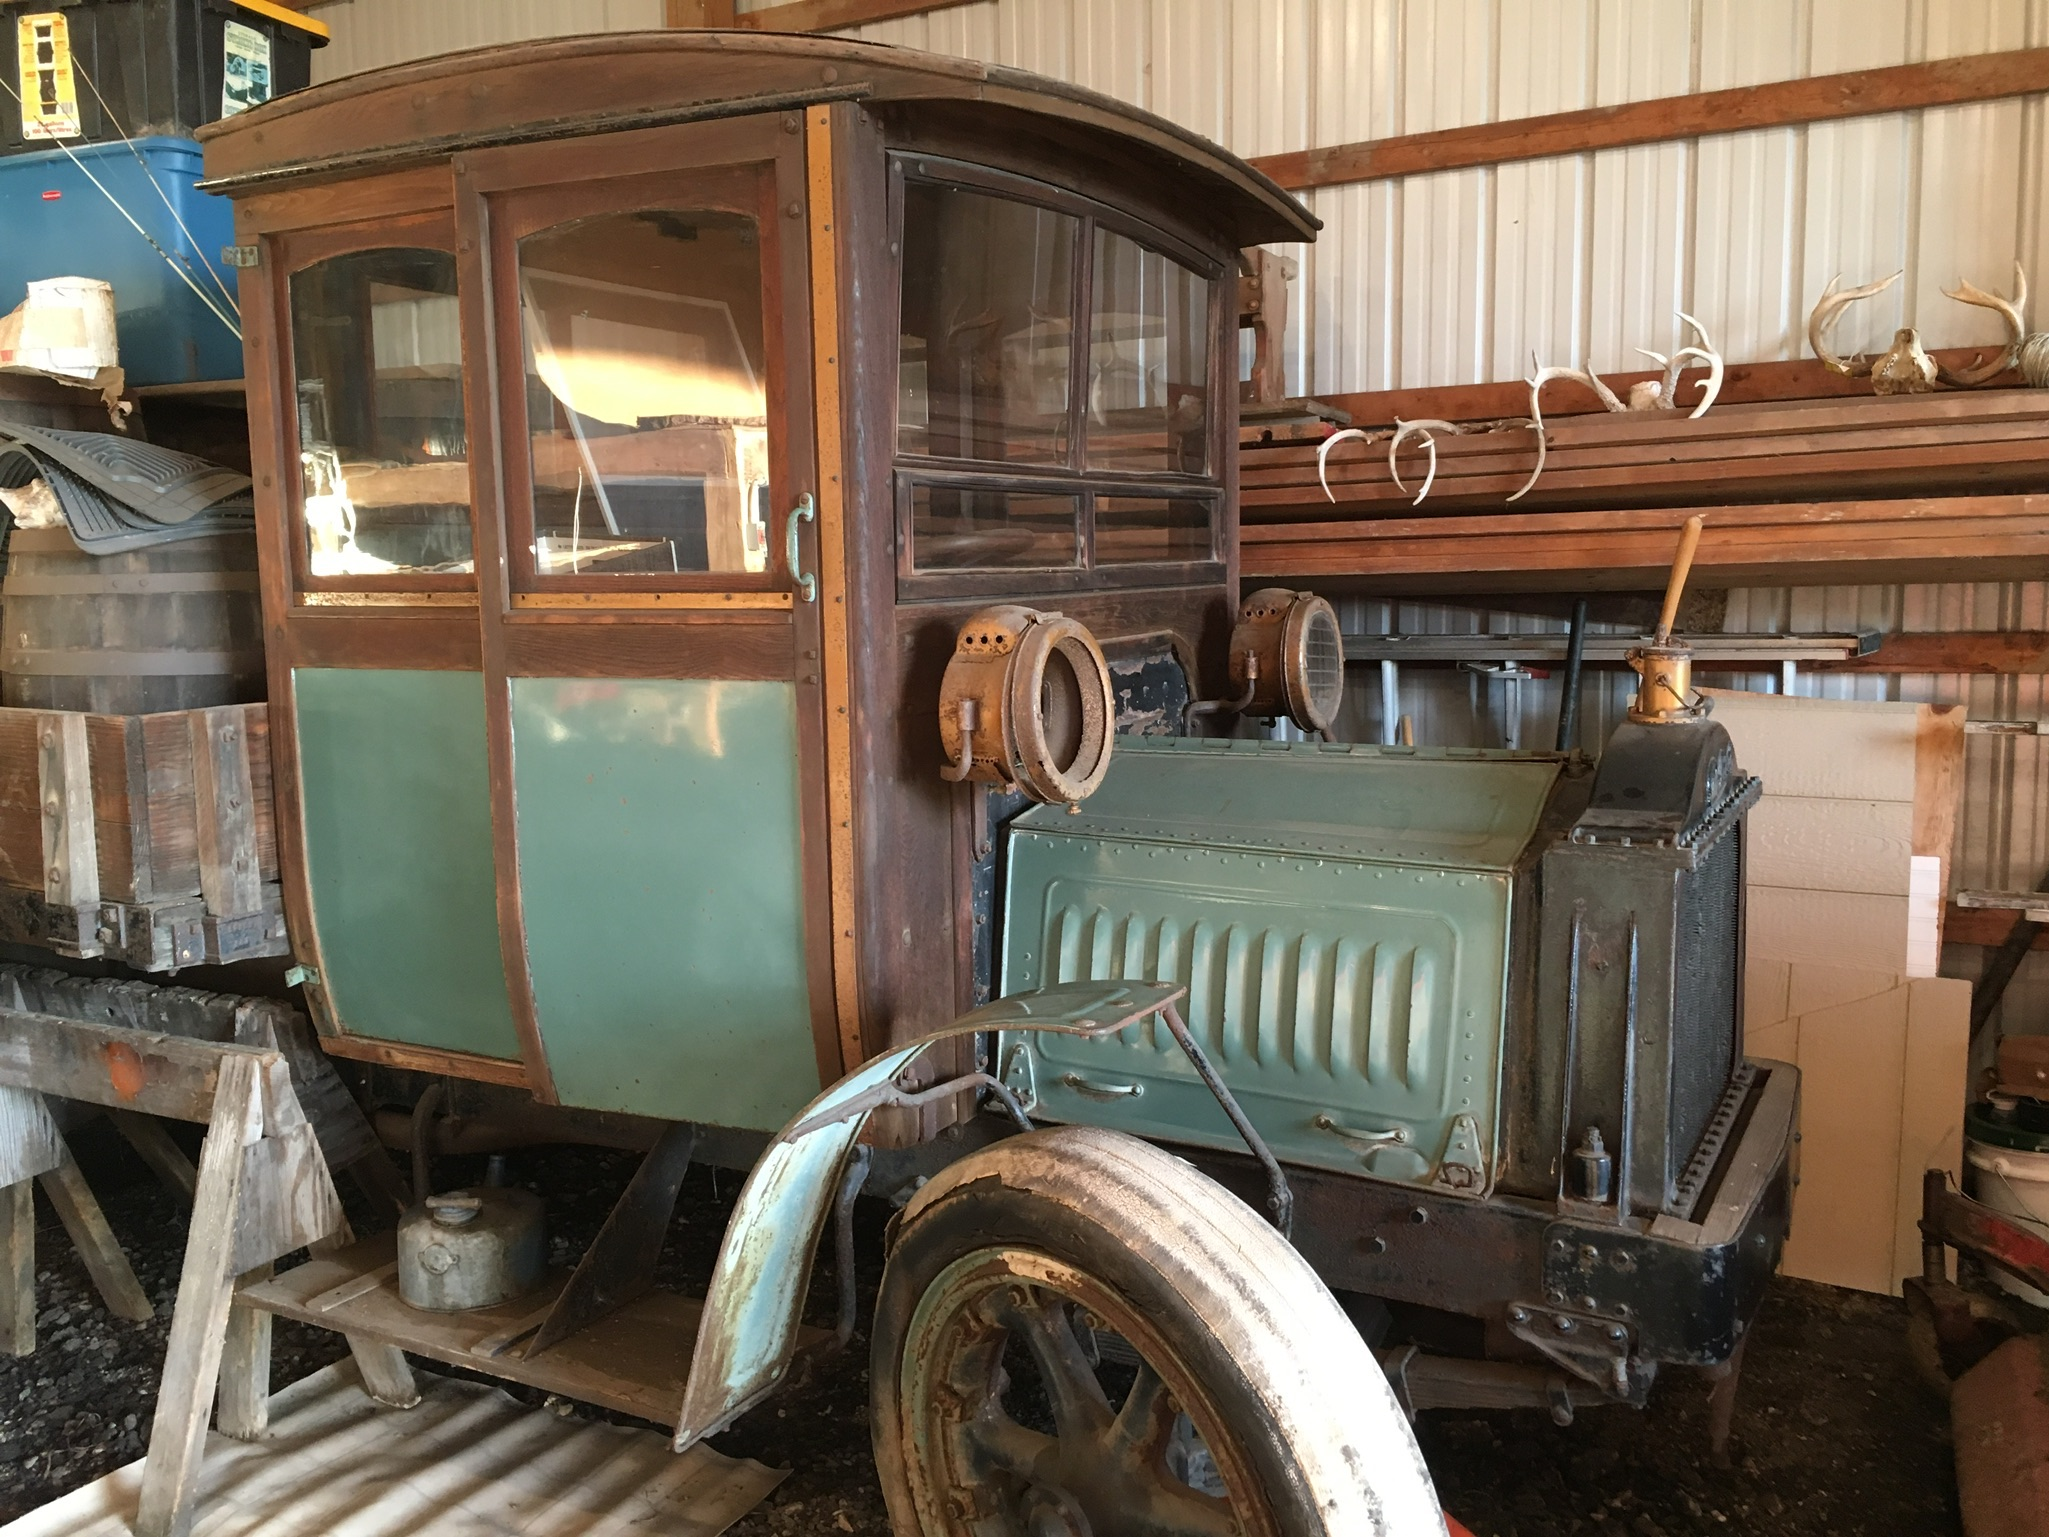 1920 Packard Truck - Cars For Sale - Antique Automobile Club of ...